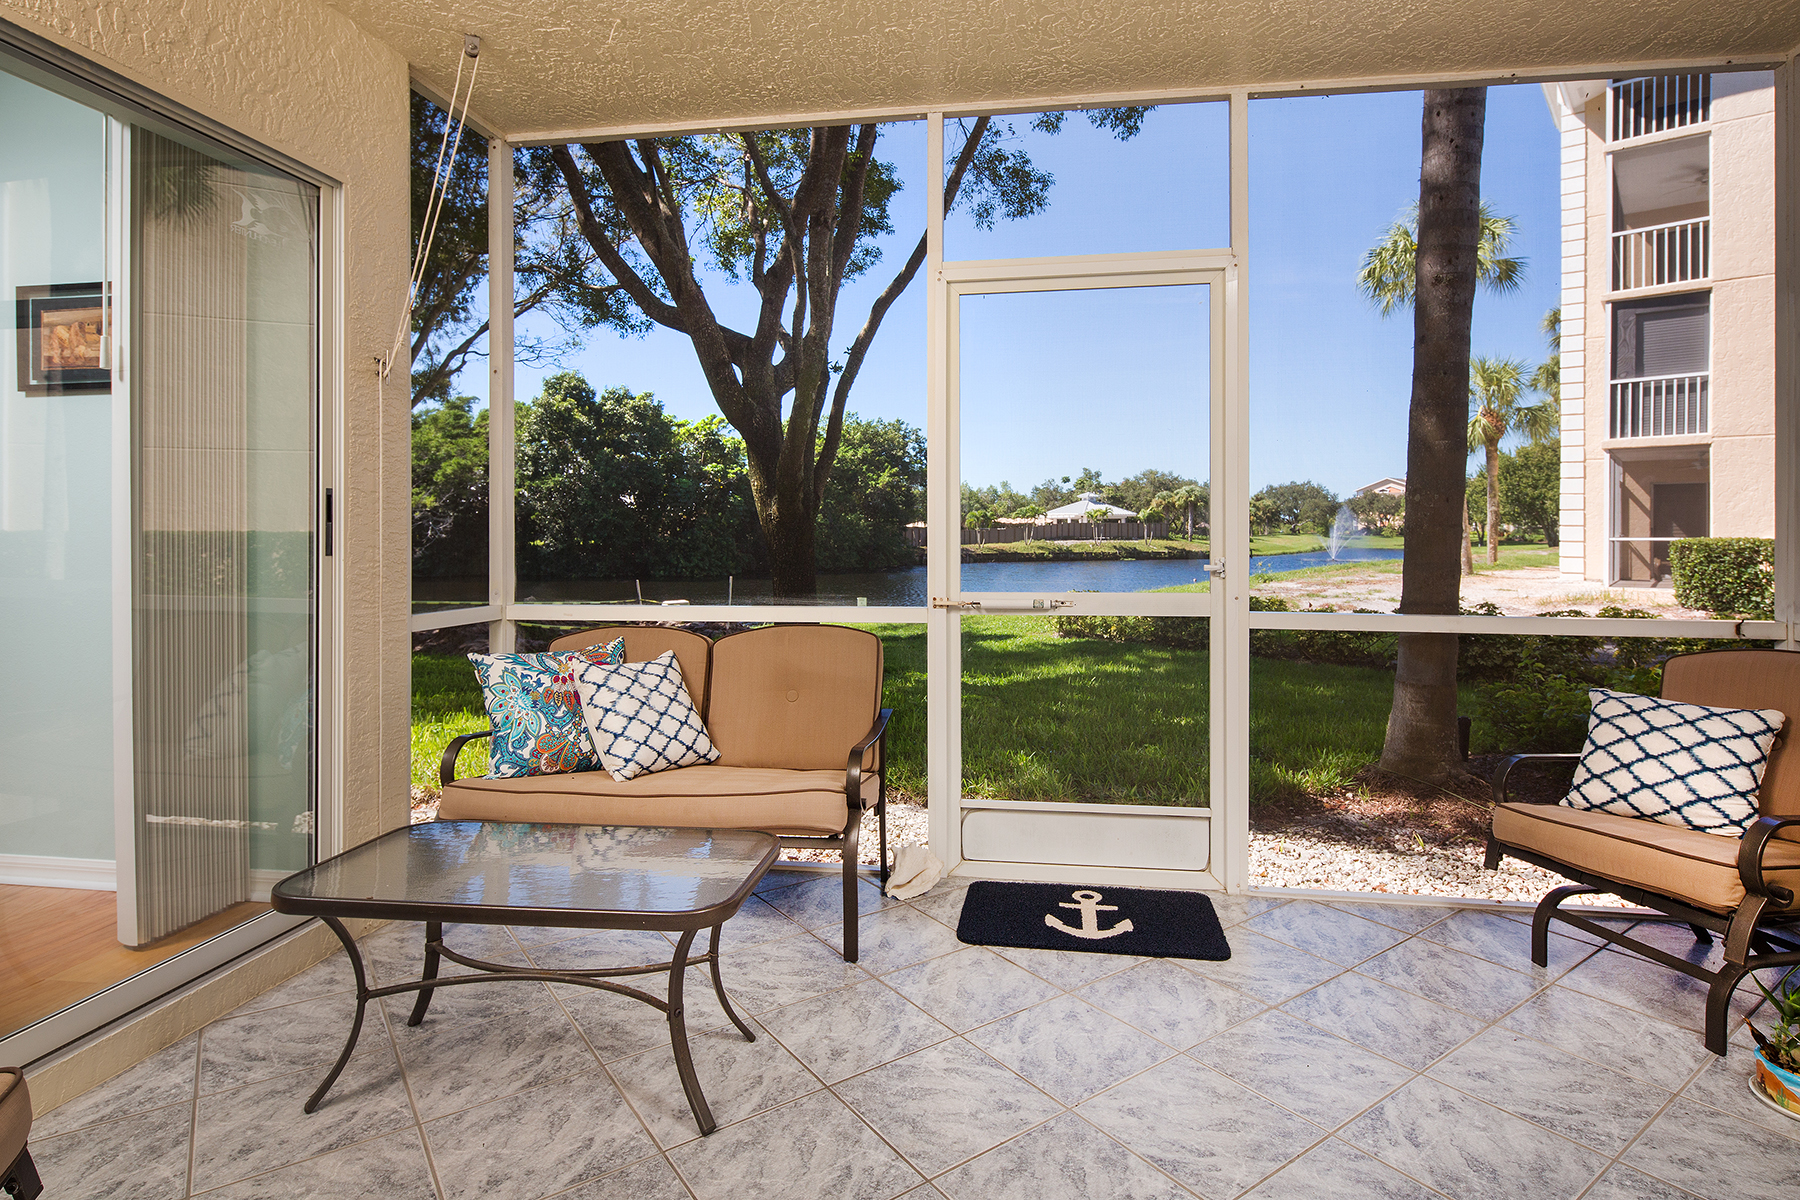 Condominium for Sale at WIGGINS BAY - BERMUDA COVE 575 Club Side Dr 4-103 Naples, Florida, 34110 United States